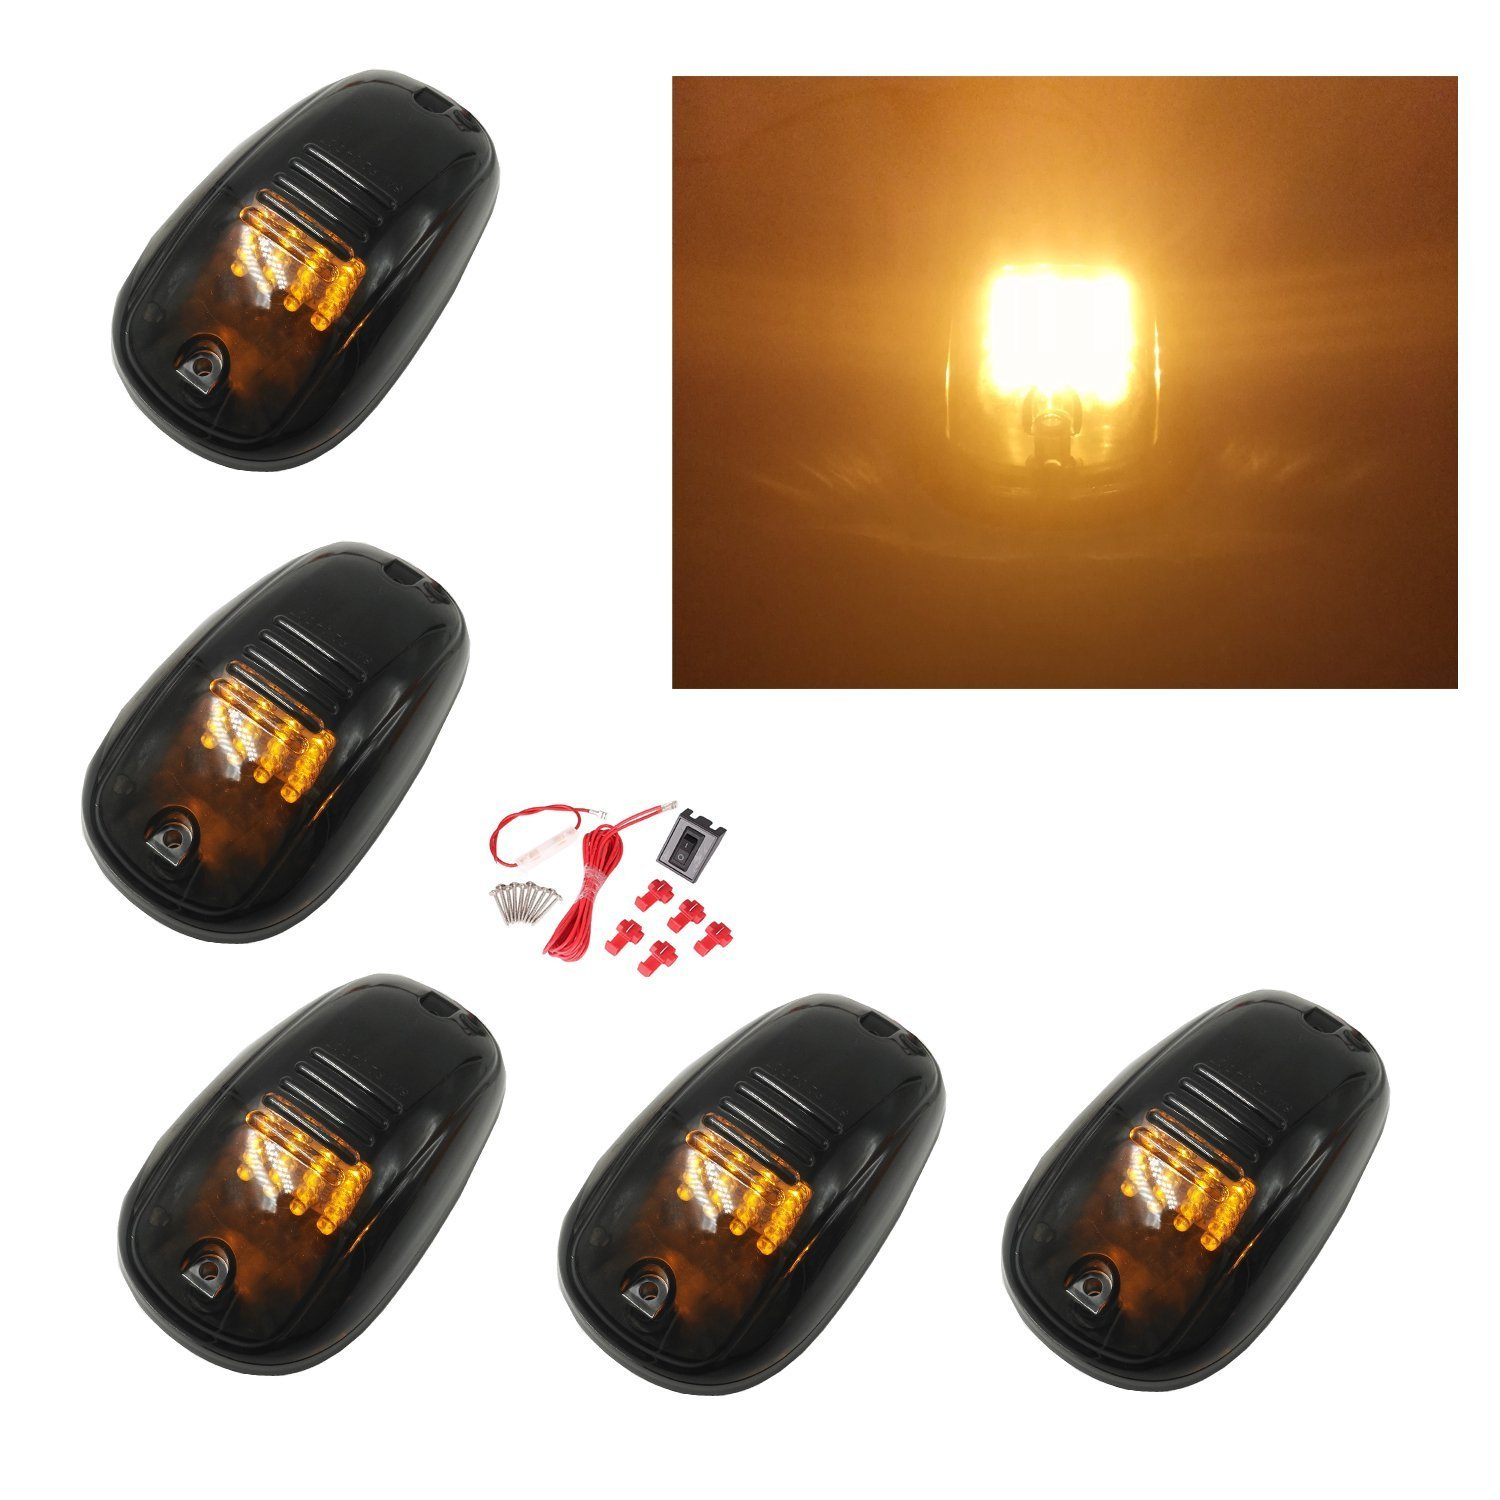 5pcs Black Smoked Lens 16 LED Cab Roof Marker Lights, KOMAS Roof Top Lamp Clearance Running Light Replacement + Switch Harness Kit for Truck SUV 2003-2016 Dodge Ram 1500 2500 3500 4500 (16 Amber LED)